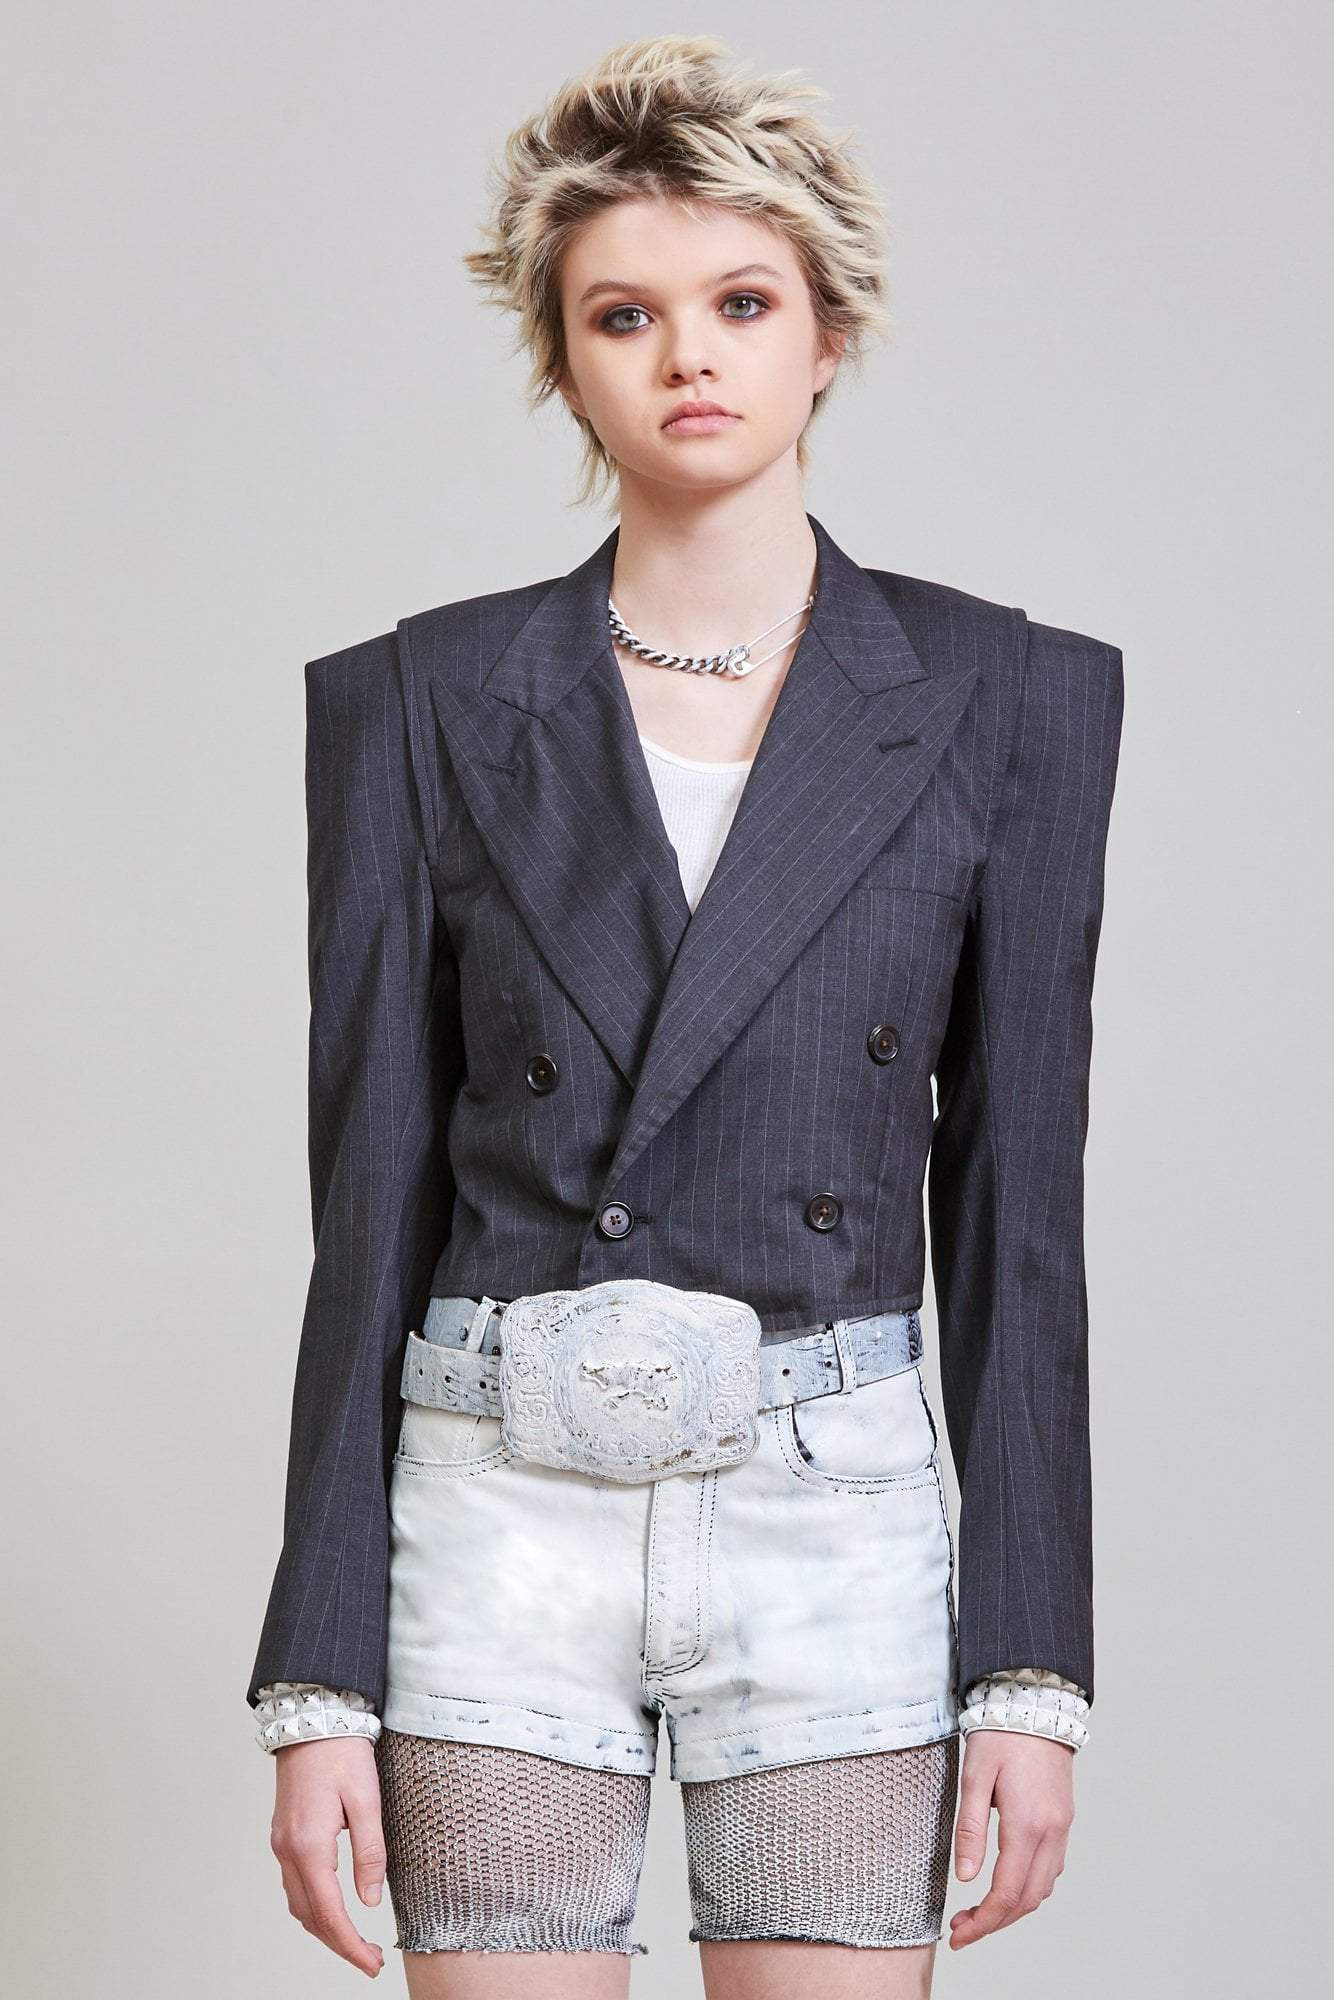 CROPPED BLAZER - GREY PINSTRIPE by R13, available on r13denim.com for $1300 Hailey Baldwin Outerwear Exact Product